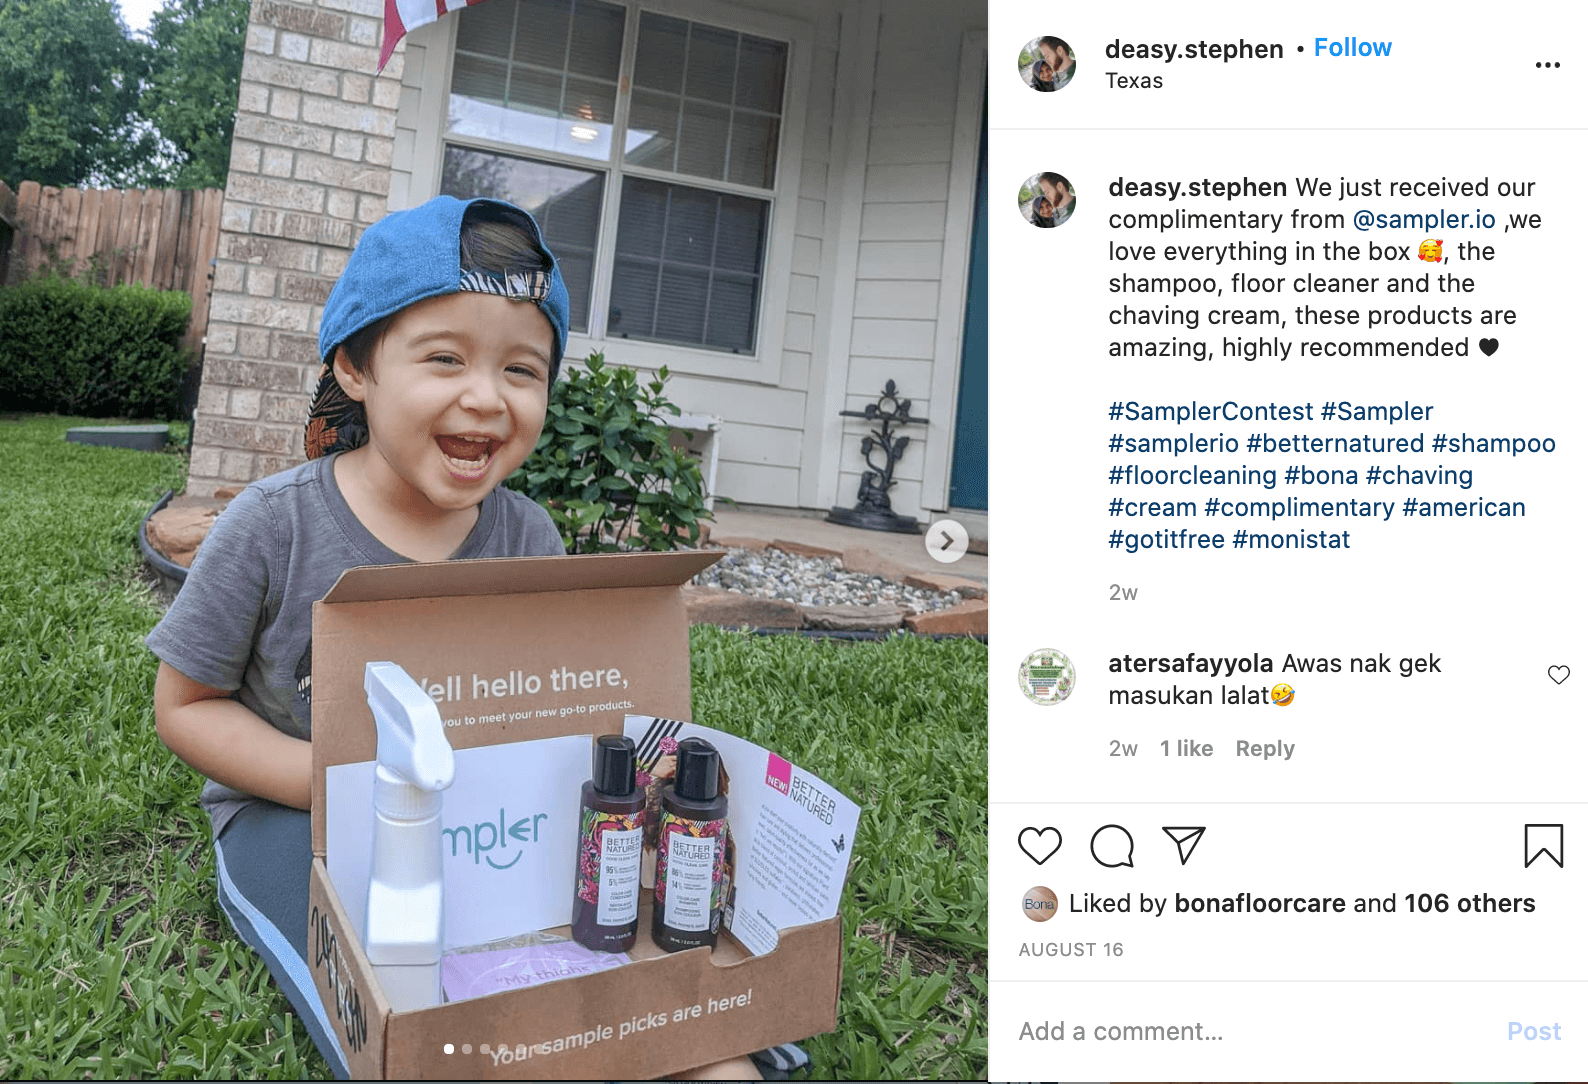 An instagram post with a child with a backwards hat on holding a Sampler box with a variety of product samples inside smiling.